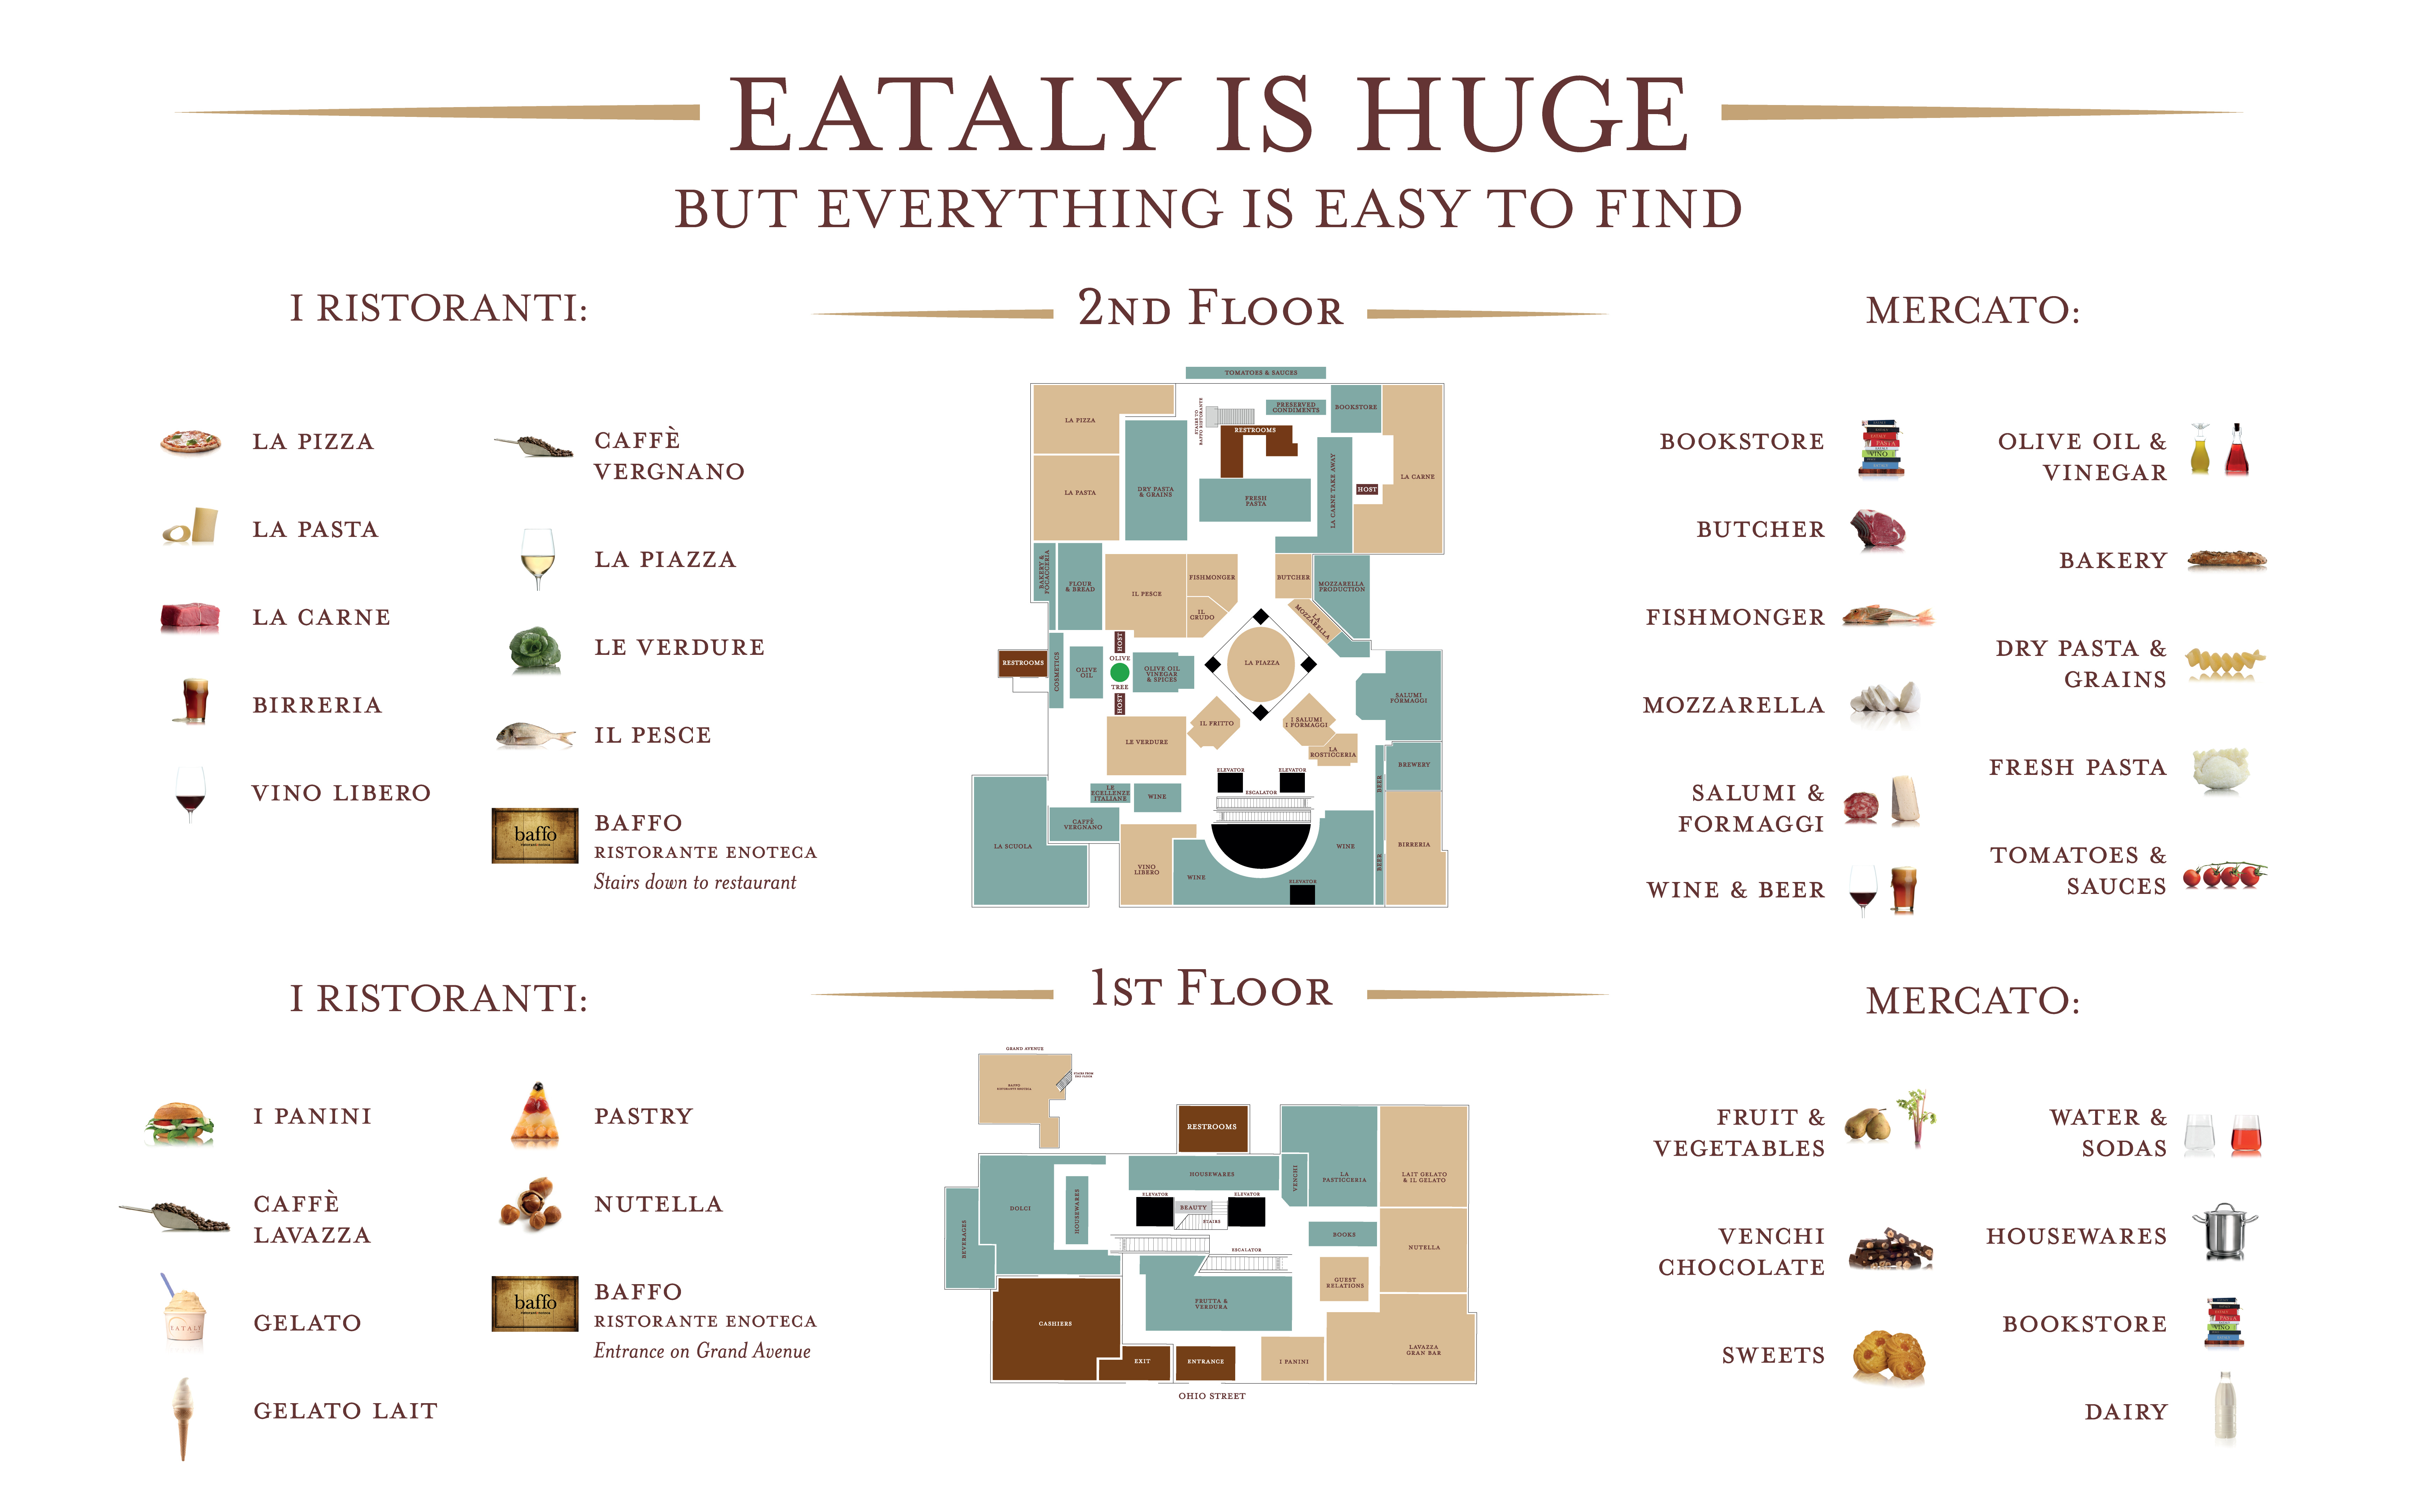 Eataly Coming To Canada Update